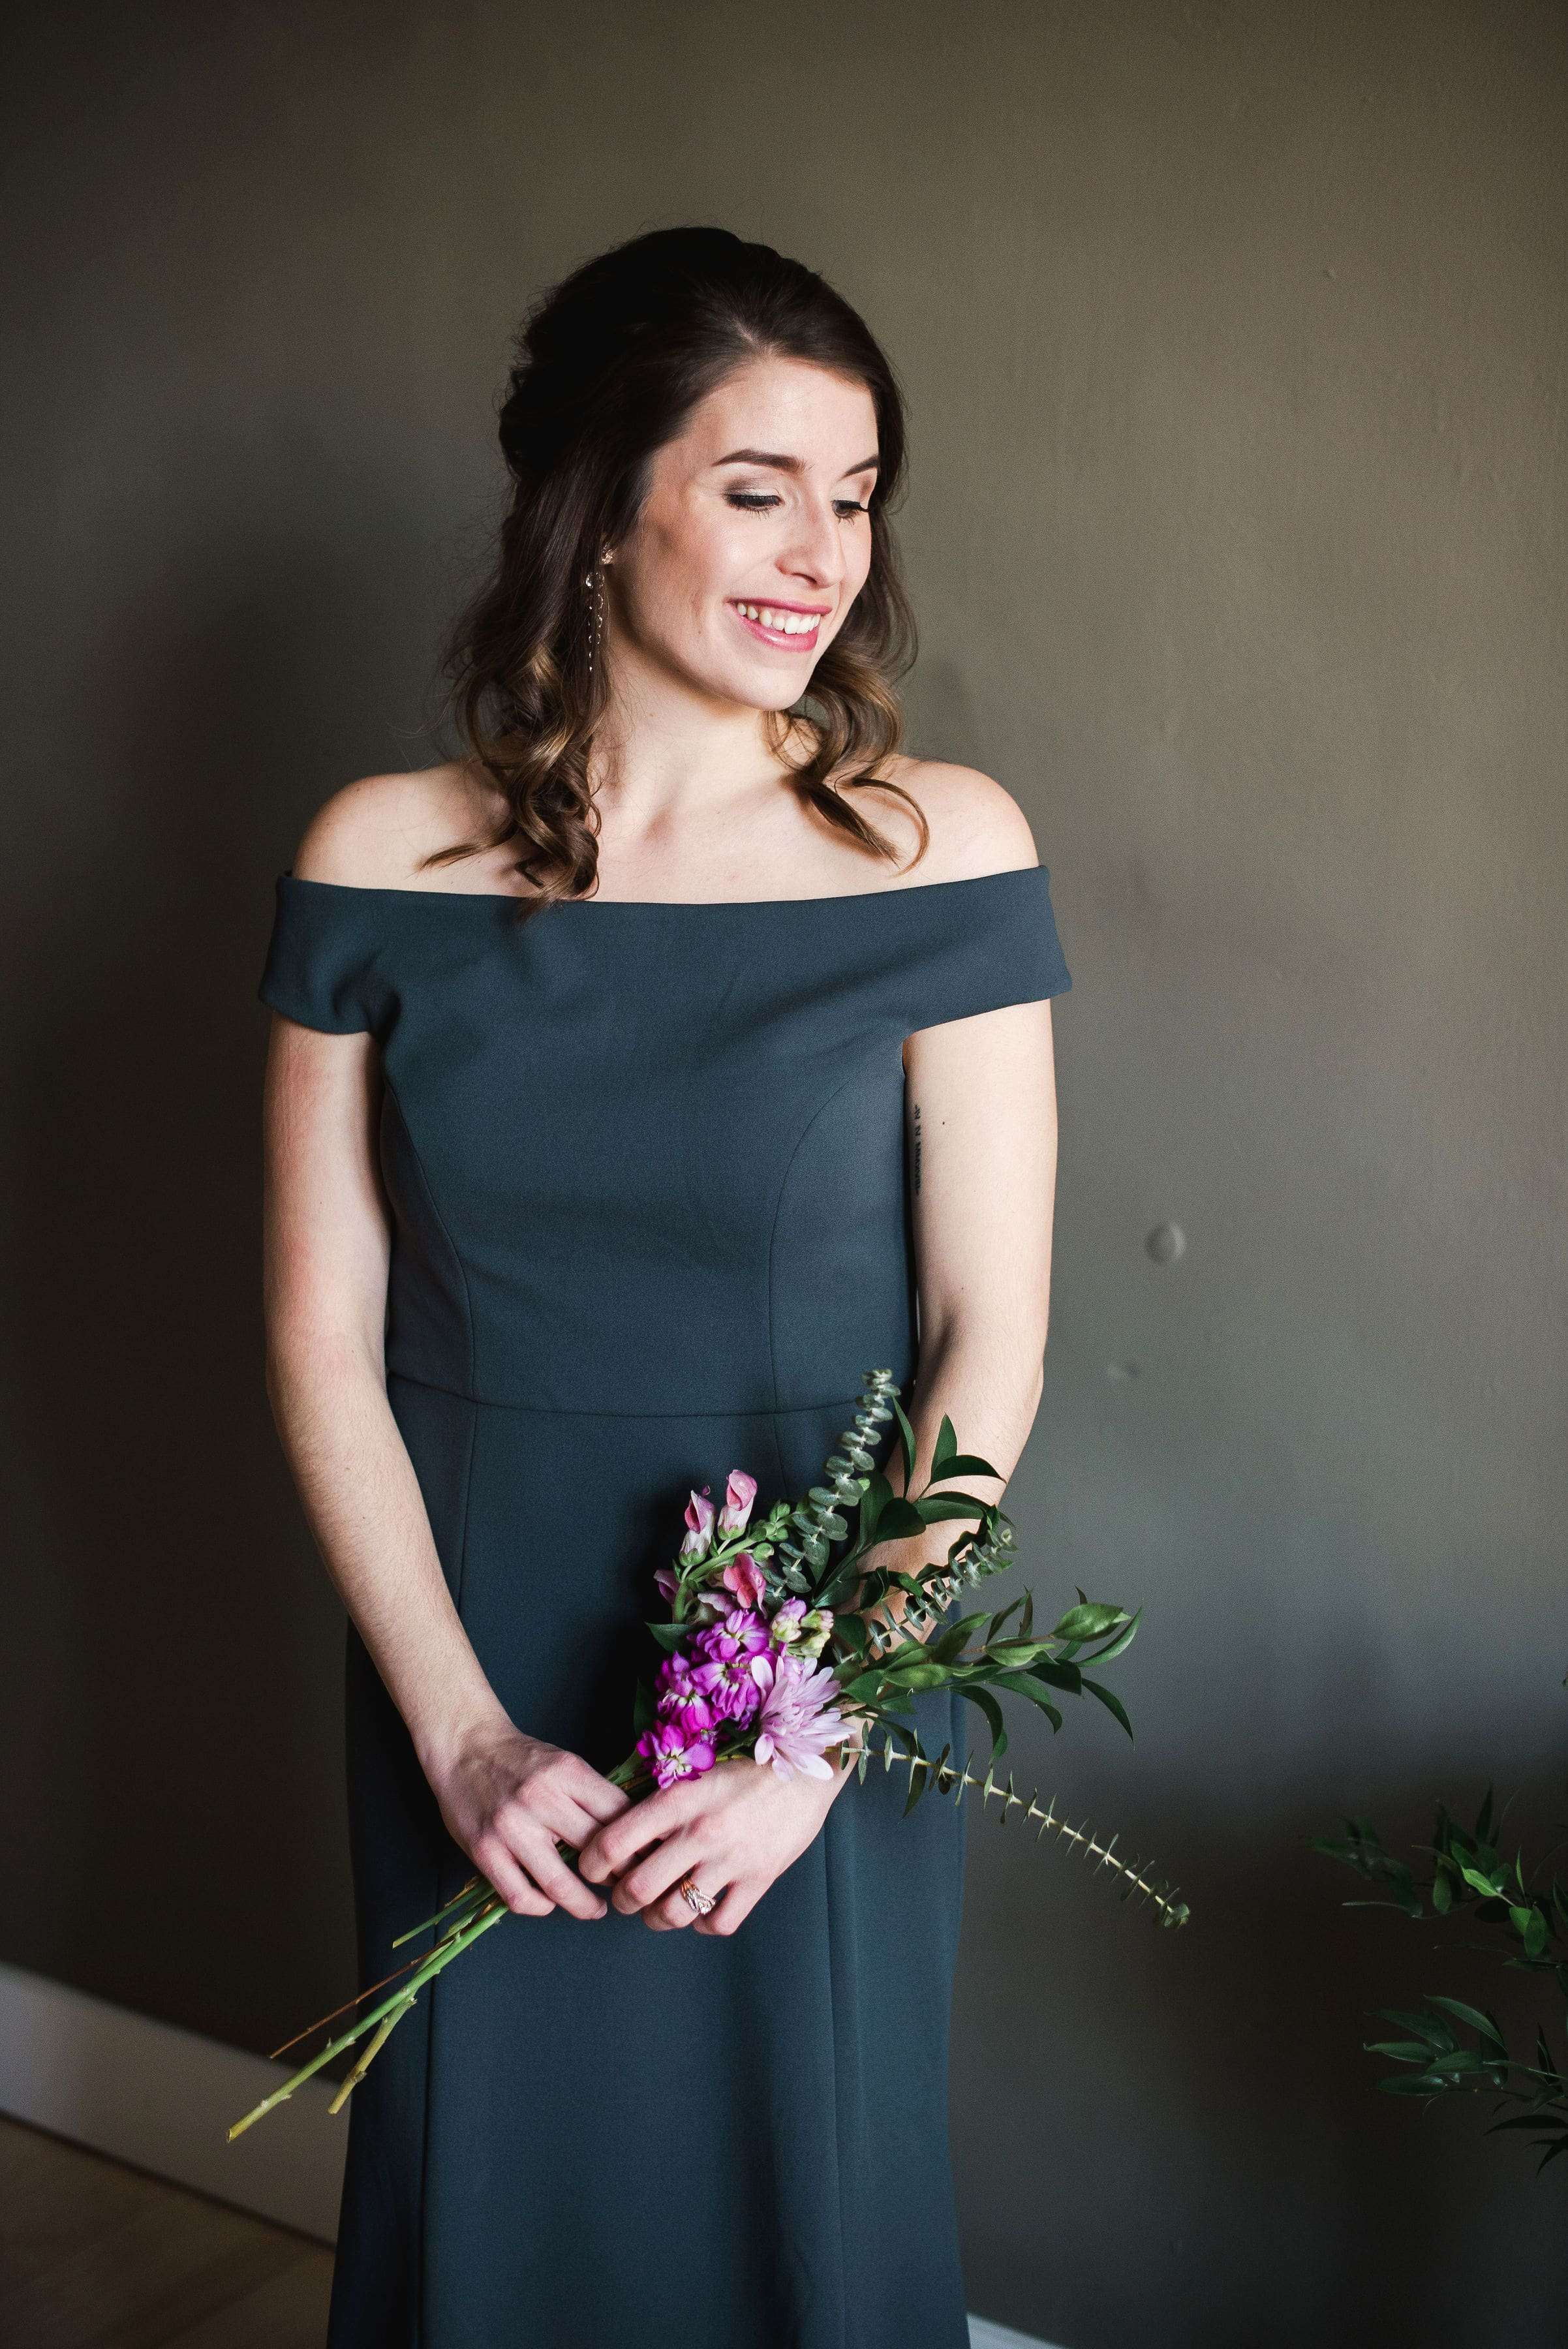 Styled shoot featuring Larson in Spring 2019 trends shoot in Columbus Ohio for Oh the Heart